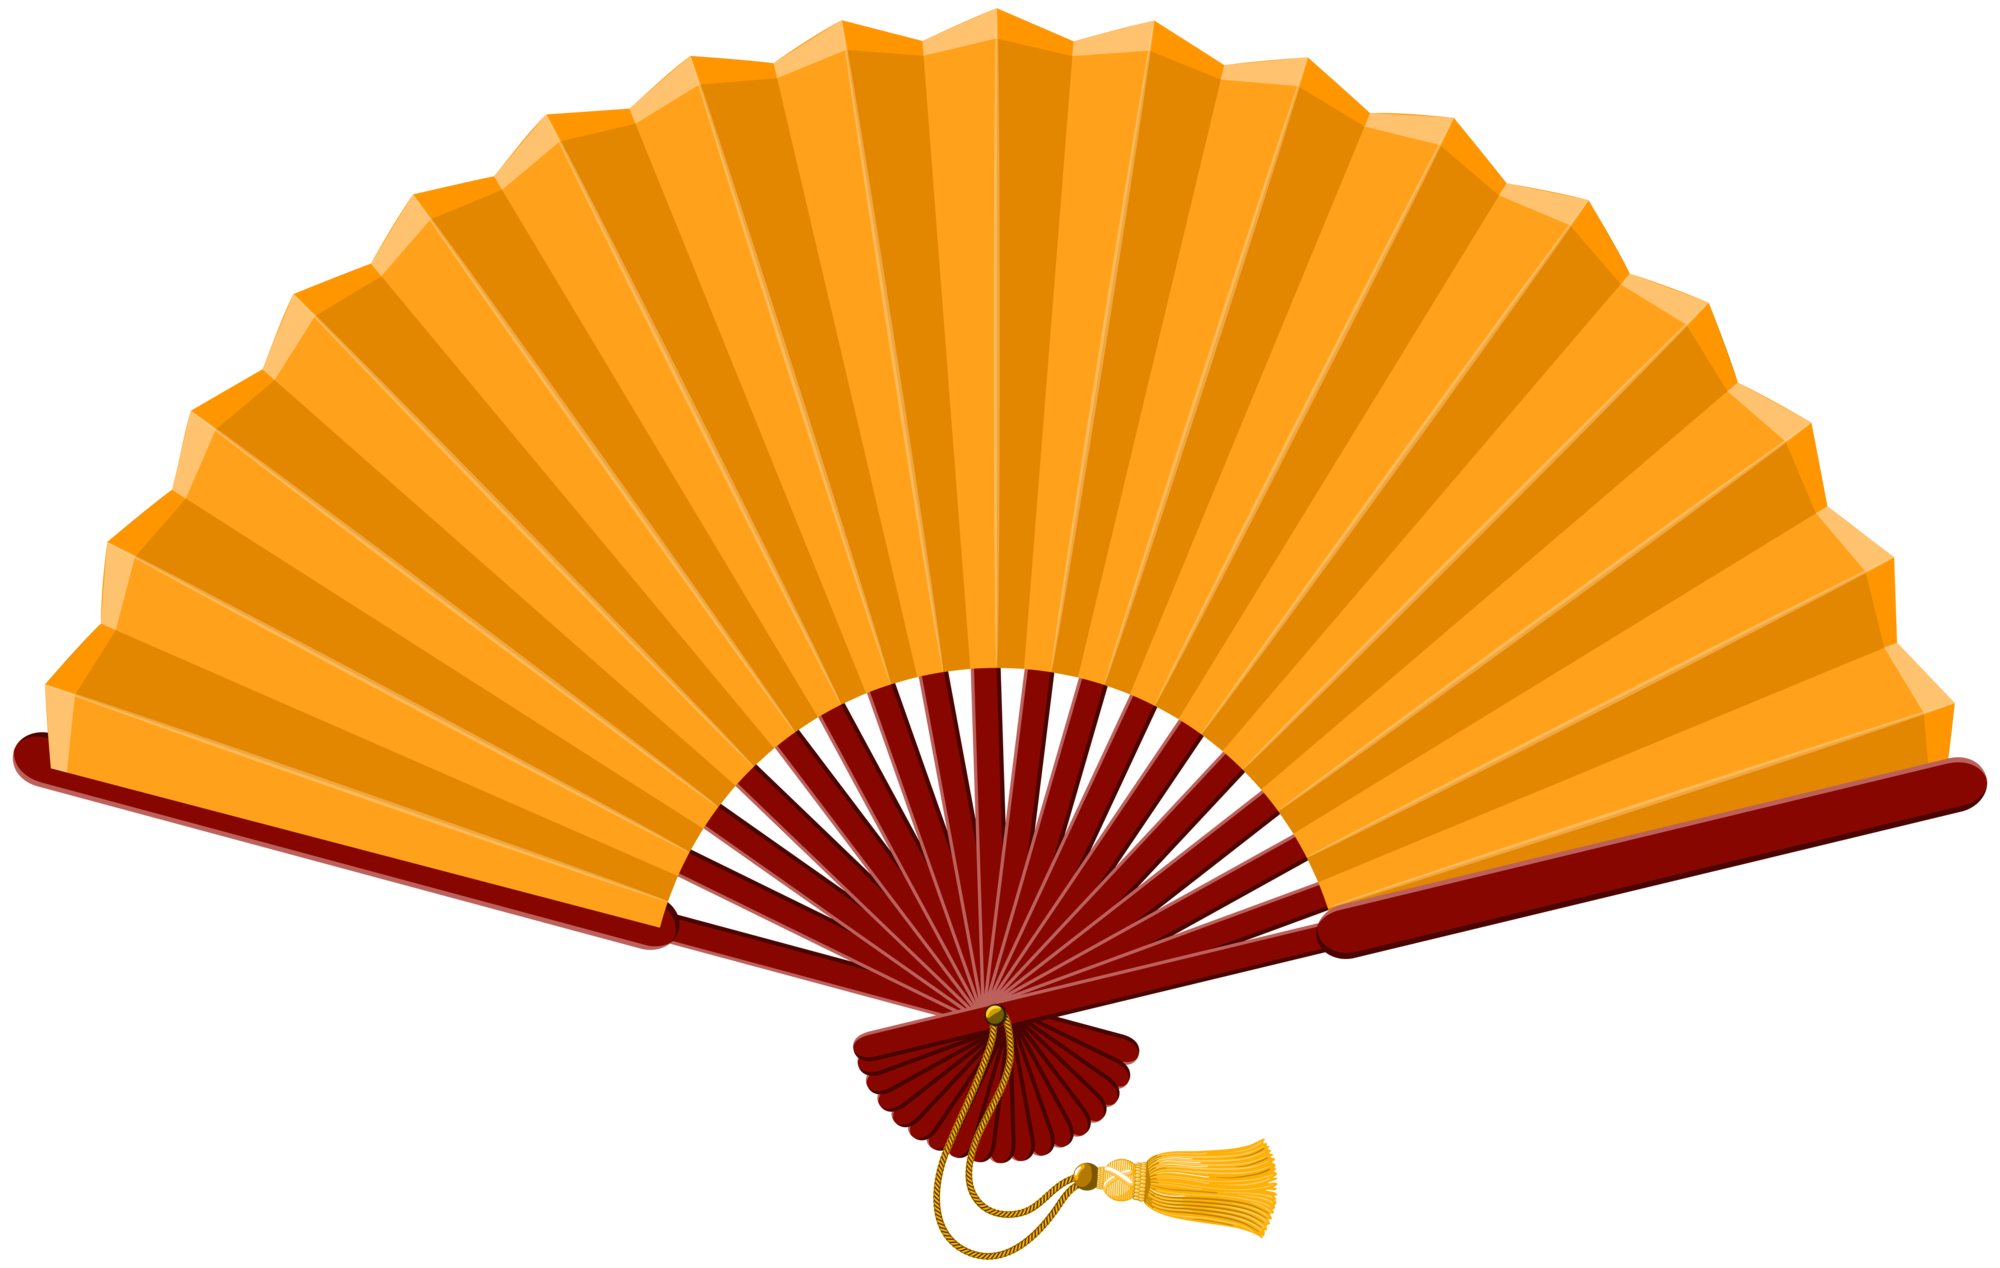 Fan clipart fan japan. Chinese png clip art